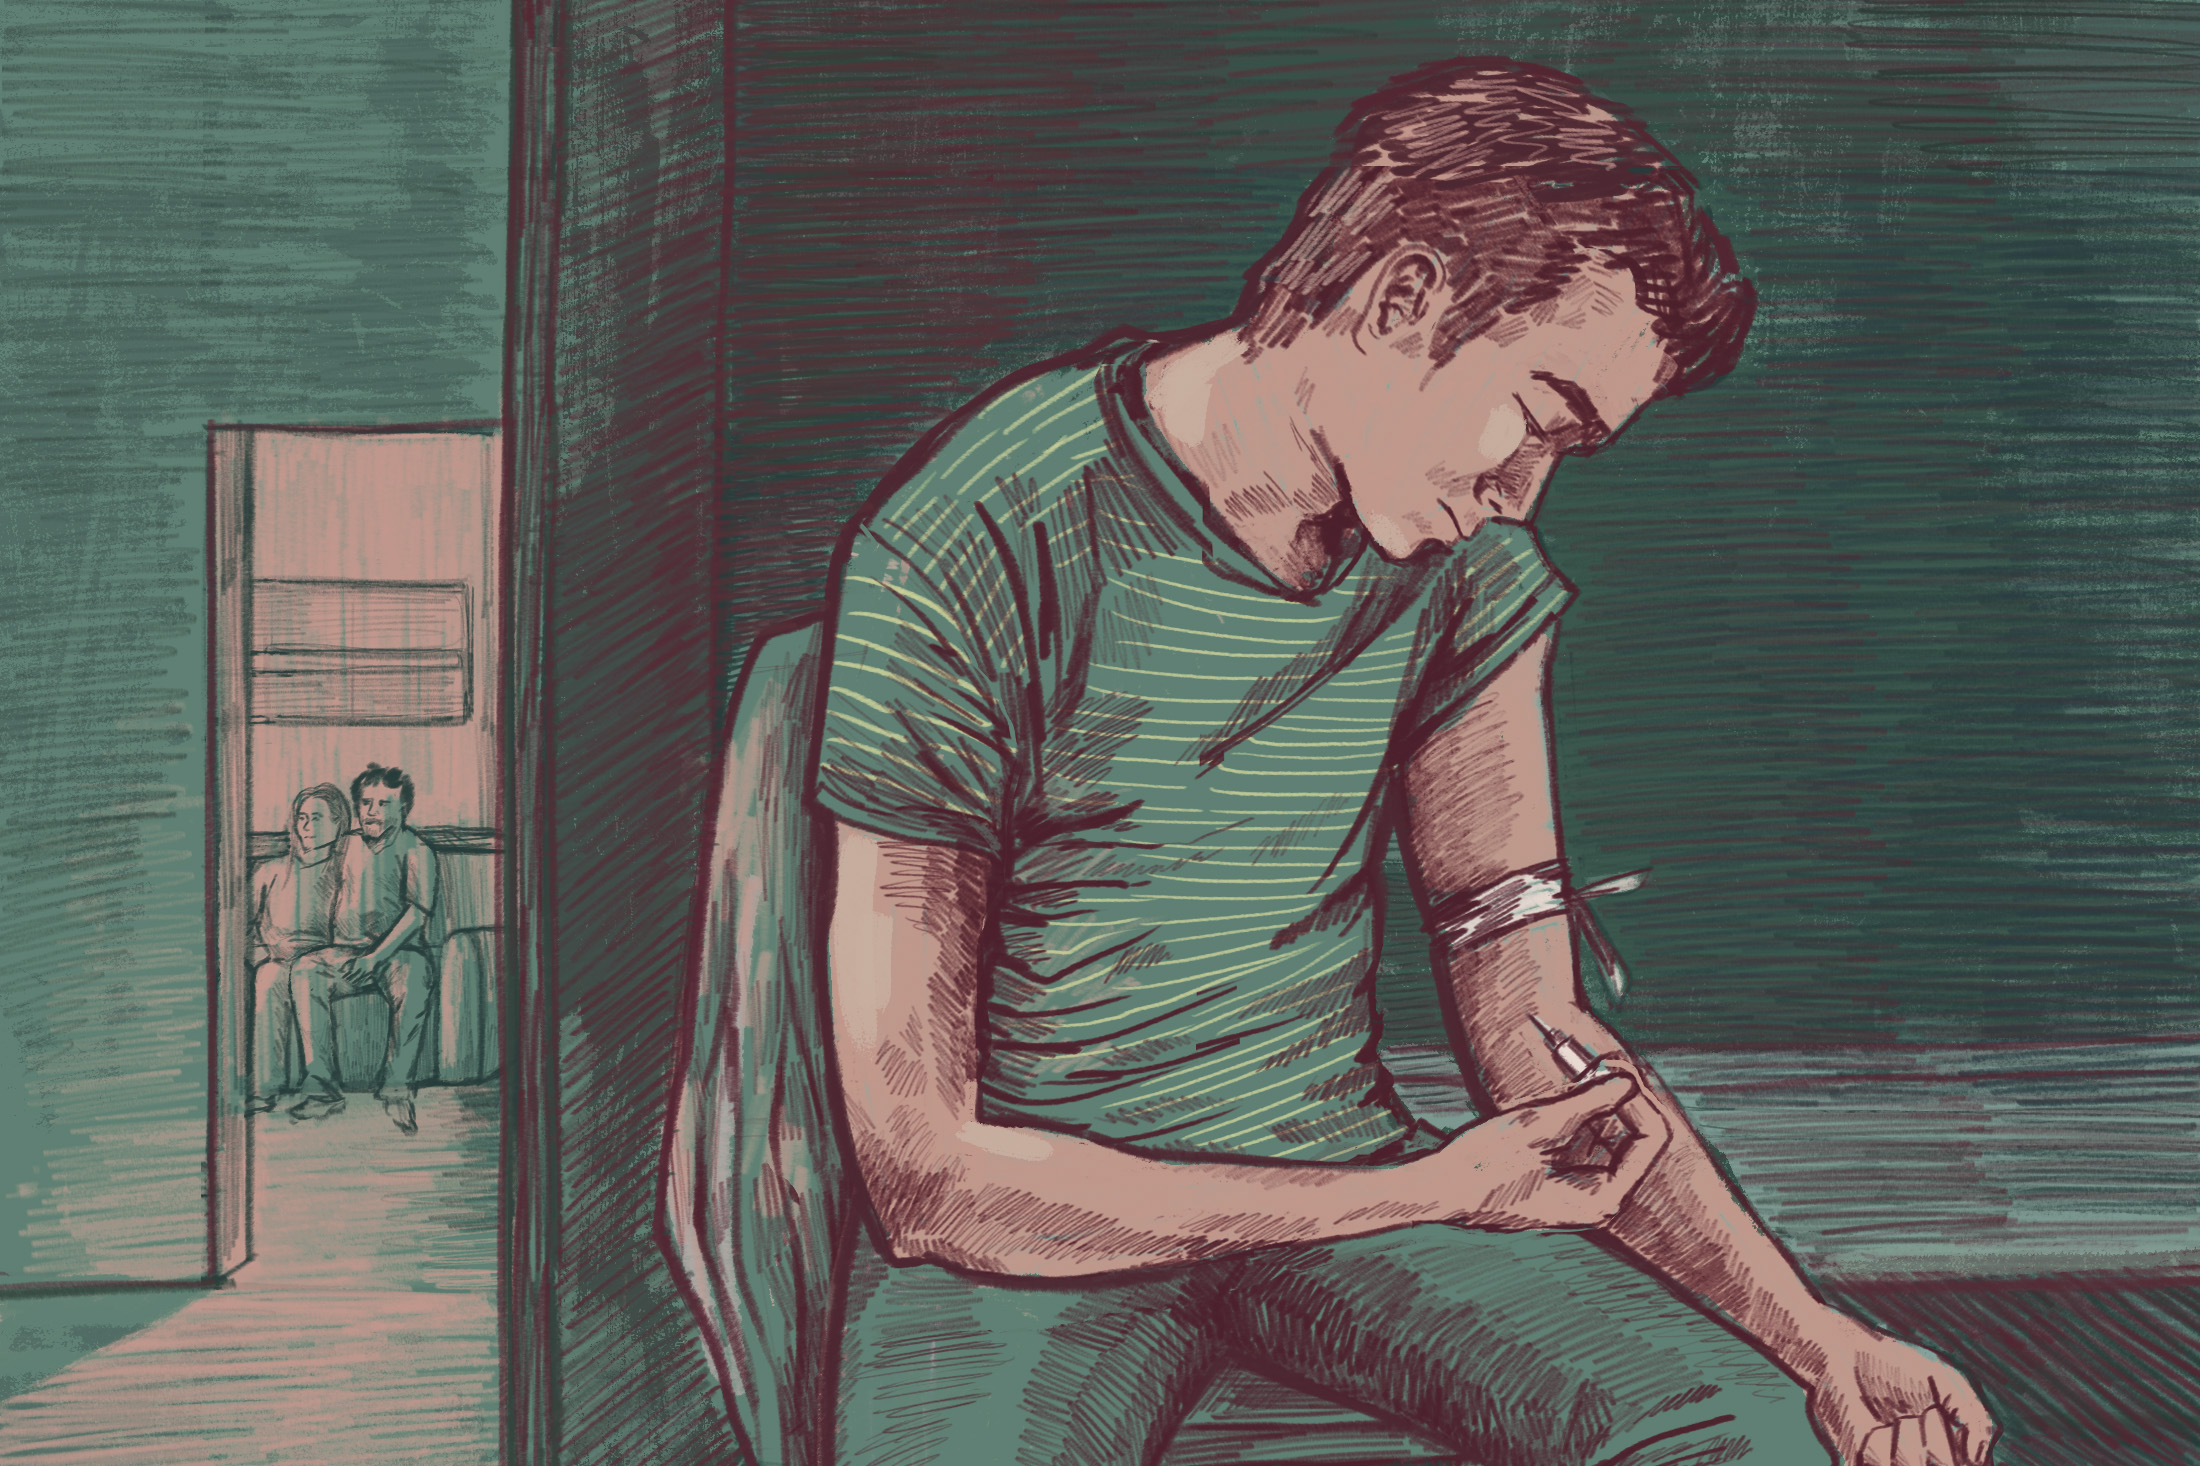 A young man shoots heroin in his bedroom while his parents are in the other room. (Illustration by Natalie Kenney/GroundTruth)